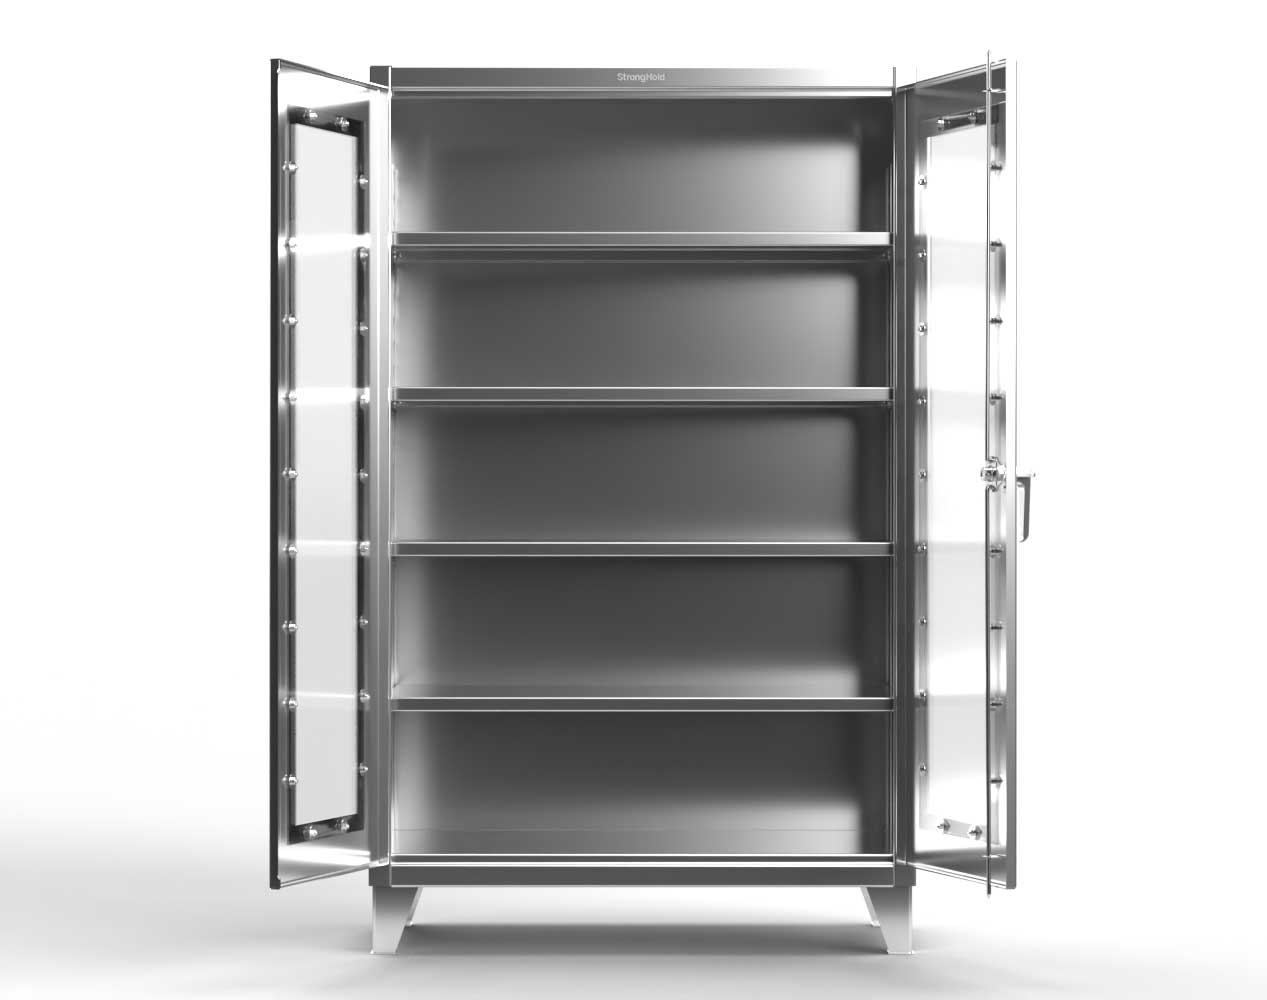 Extra Heavy Duty 12 GA Stainless Steel Clearview Cabinet with 3 Shelves – 48 In. W x 24 In. D x 66 In. H